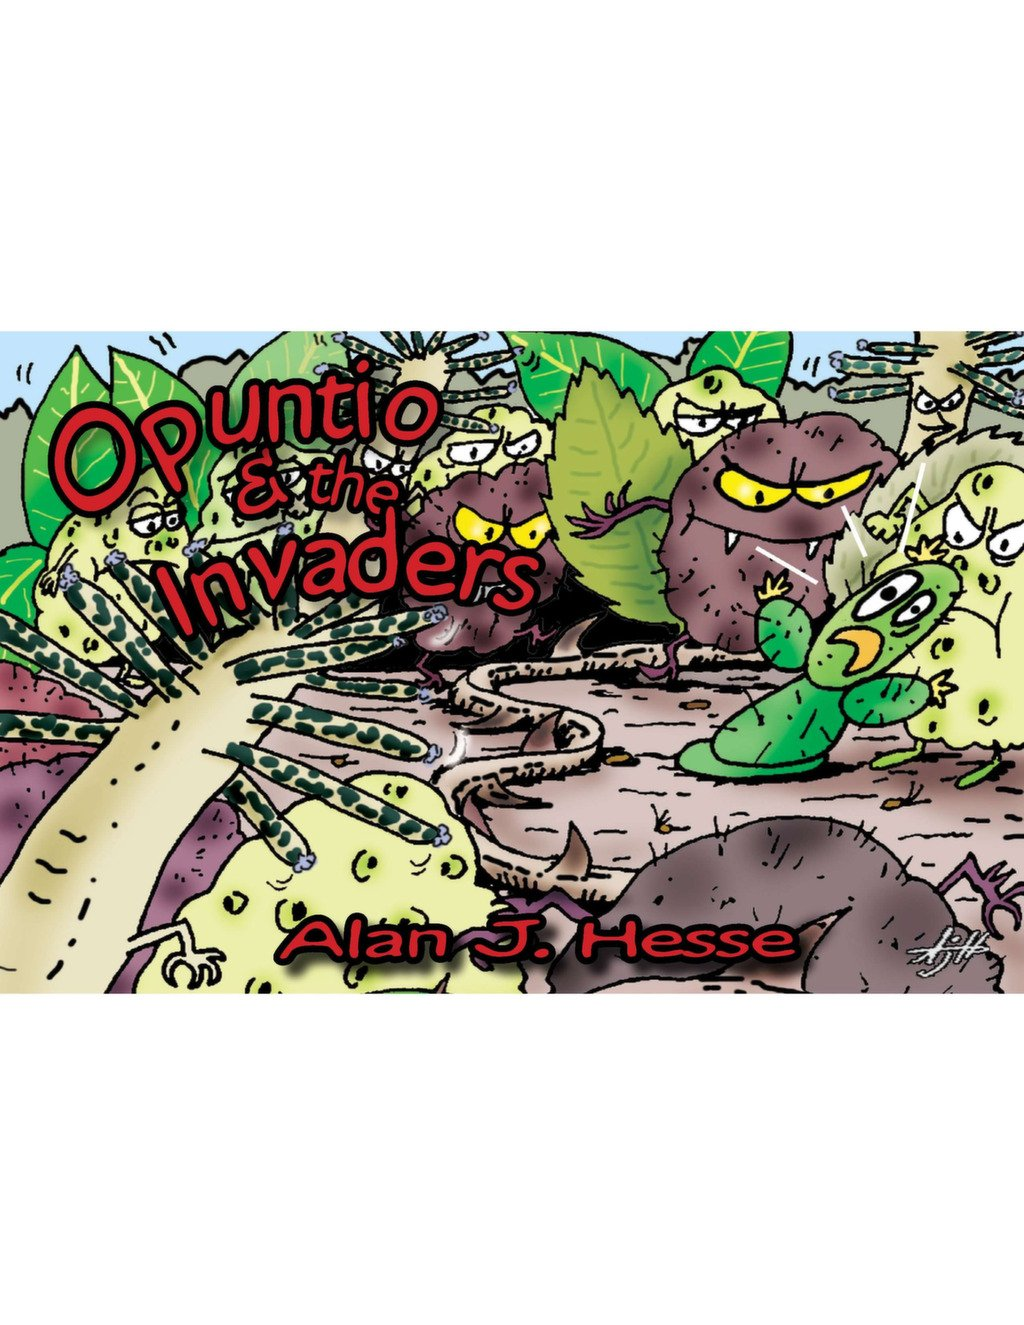 Opuntio booklet